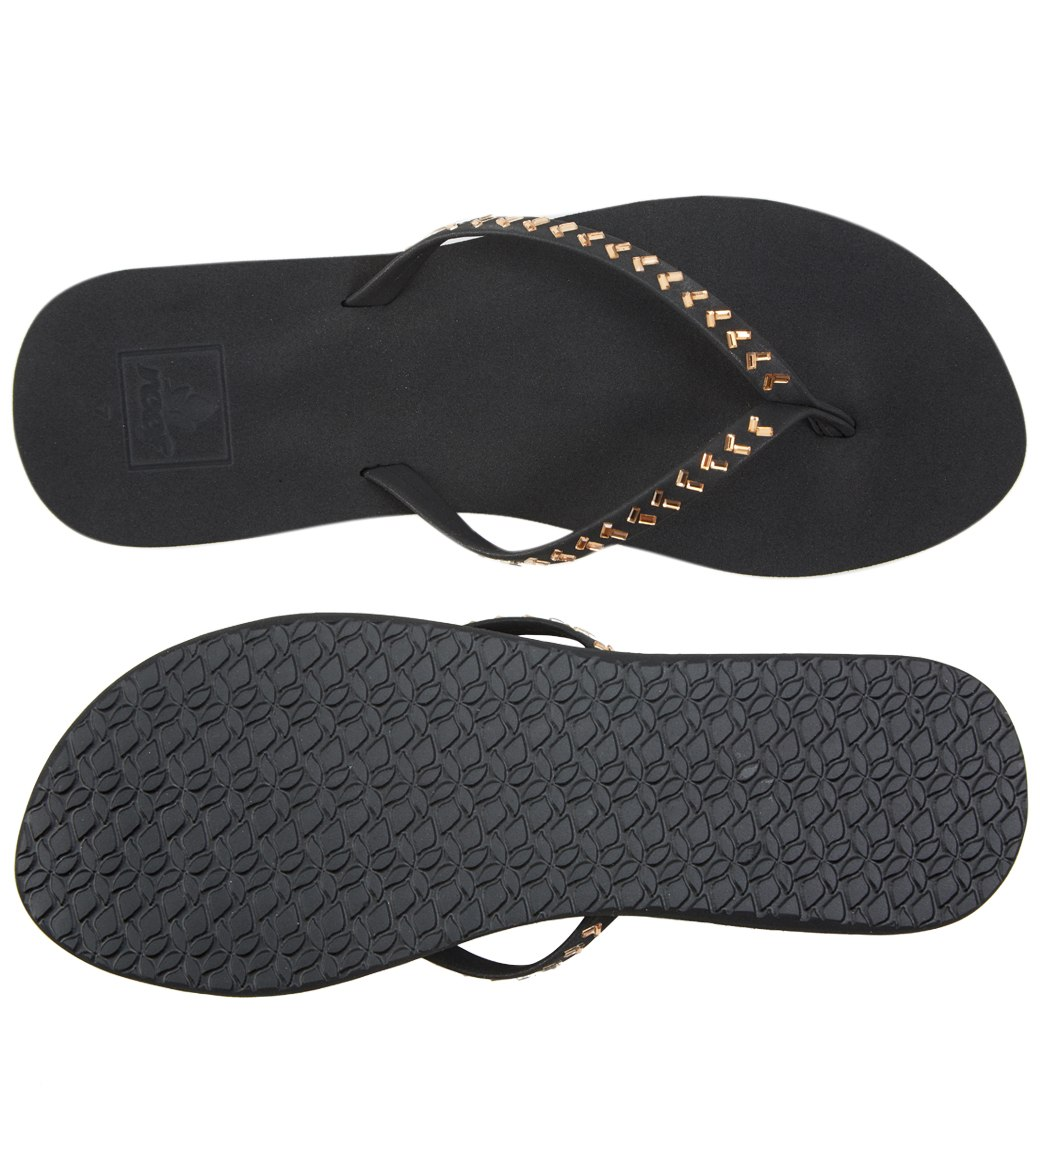 05cfa8d22d38 Reef Women s Bliss Embellished Flip Flop at SwimOutlet.com